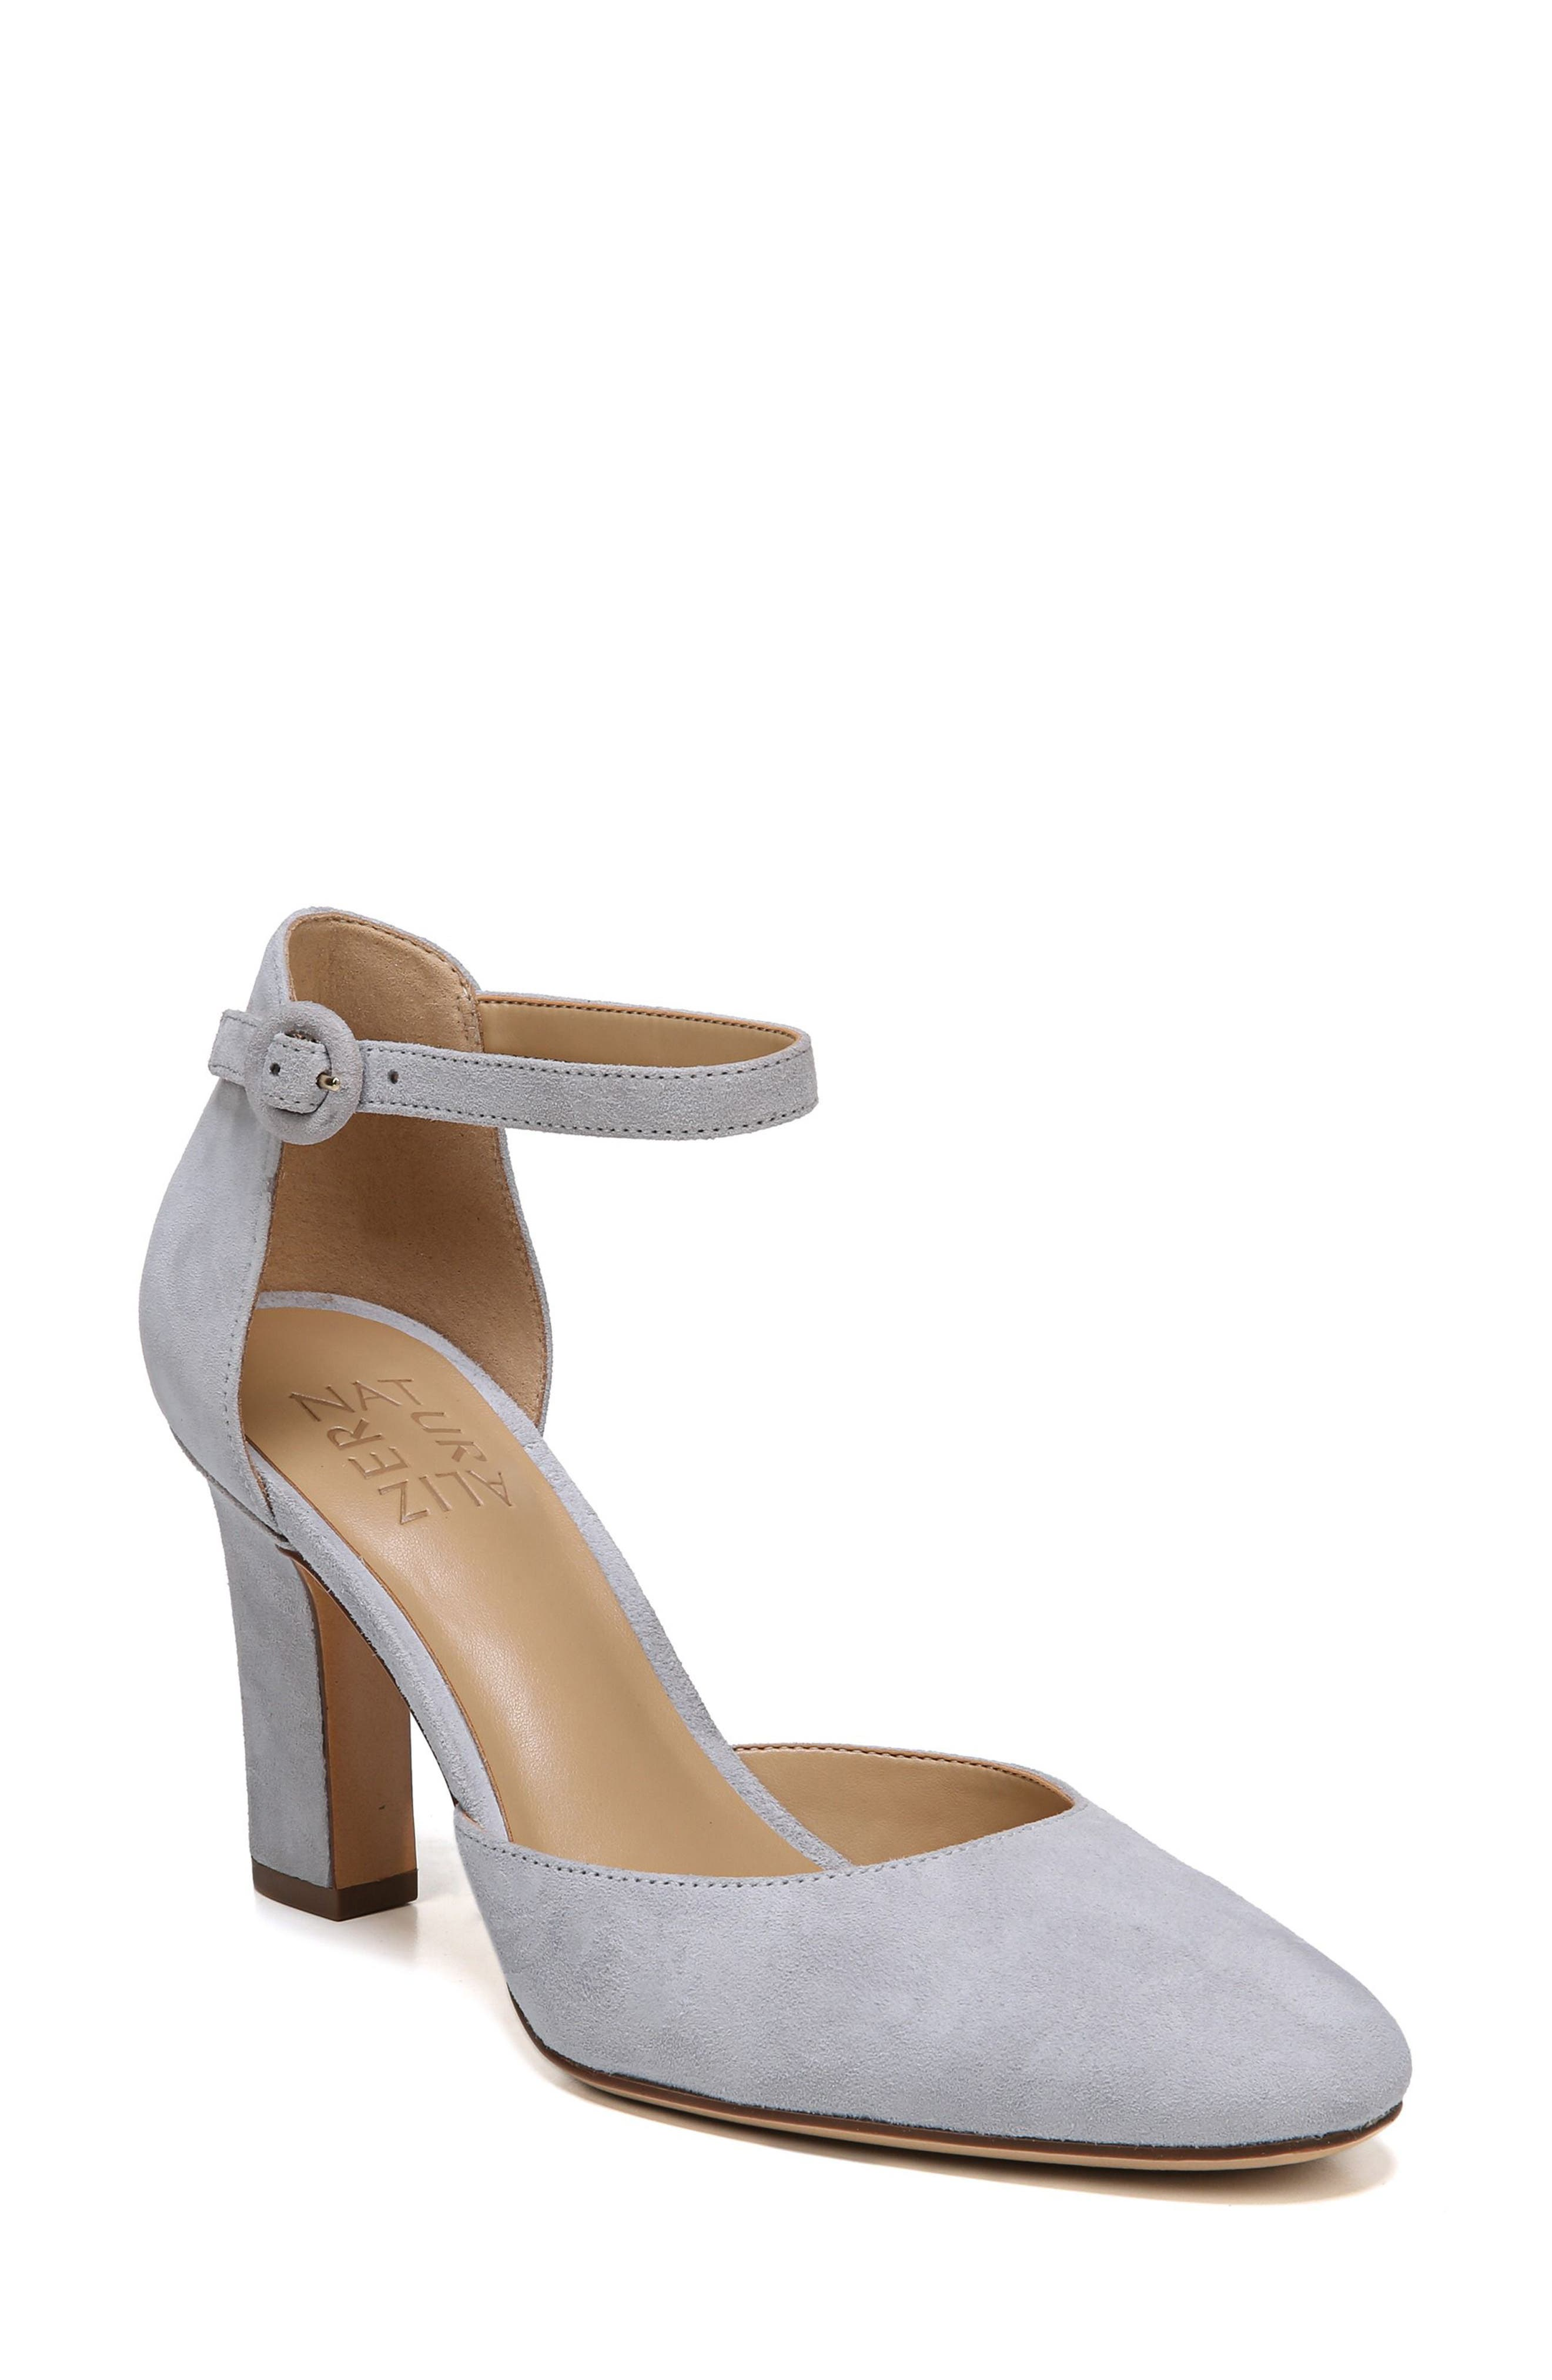 Alternate Image 1 Selected - Naturalizer Gianna Ankle Strap Pump (Women)